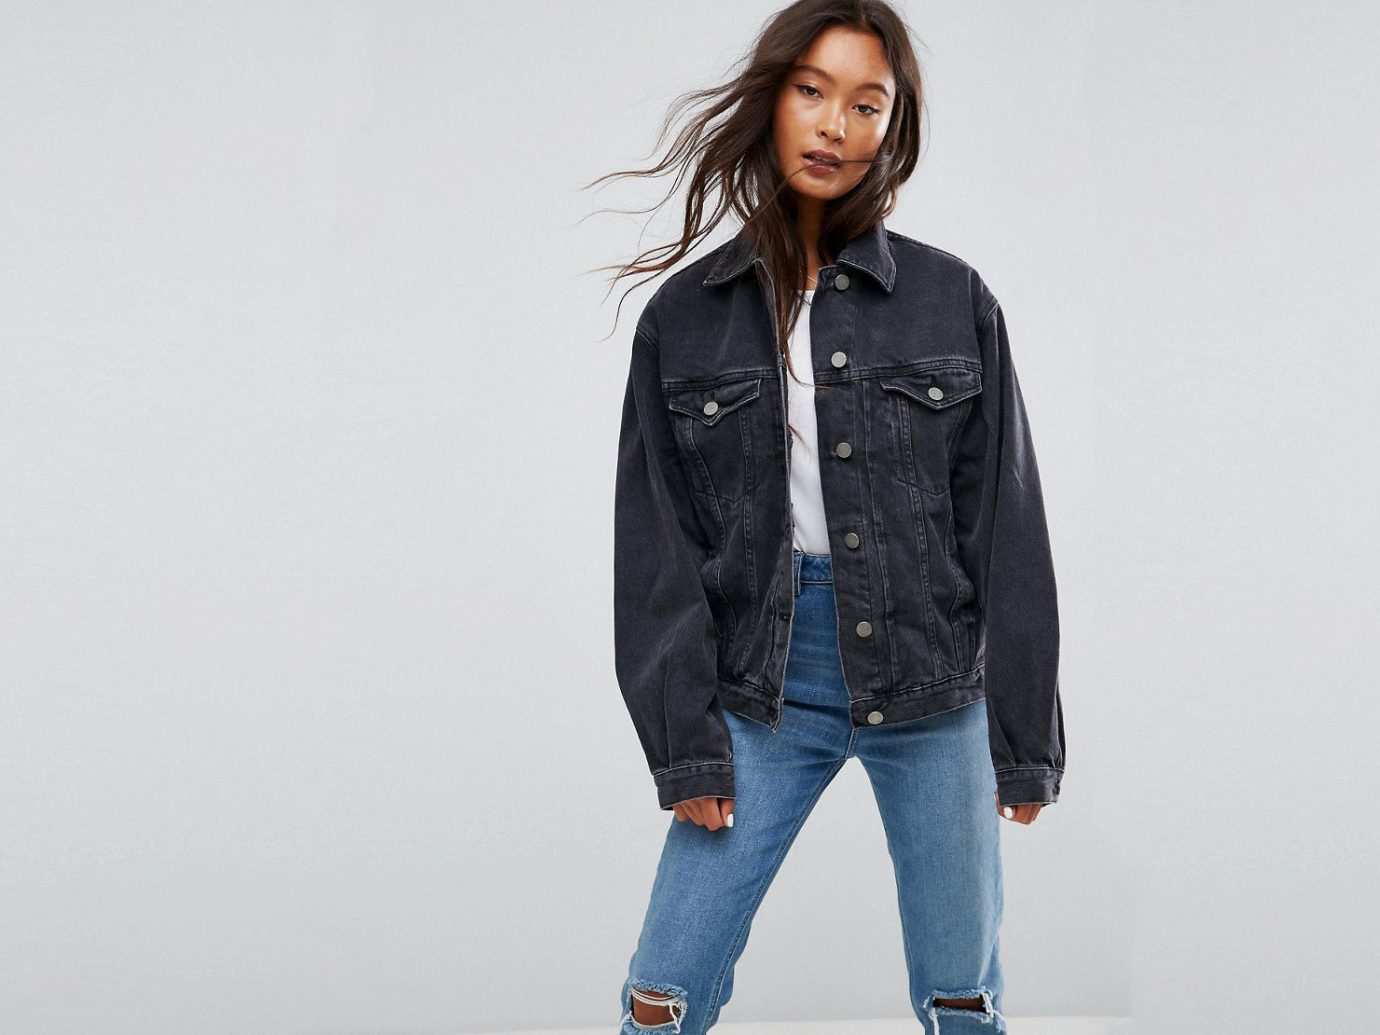 Style + Design Travel Shop person denim jeans jacket standing fashion model outerwear sleeve trousers trouser